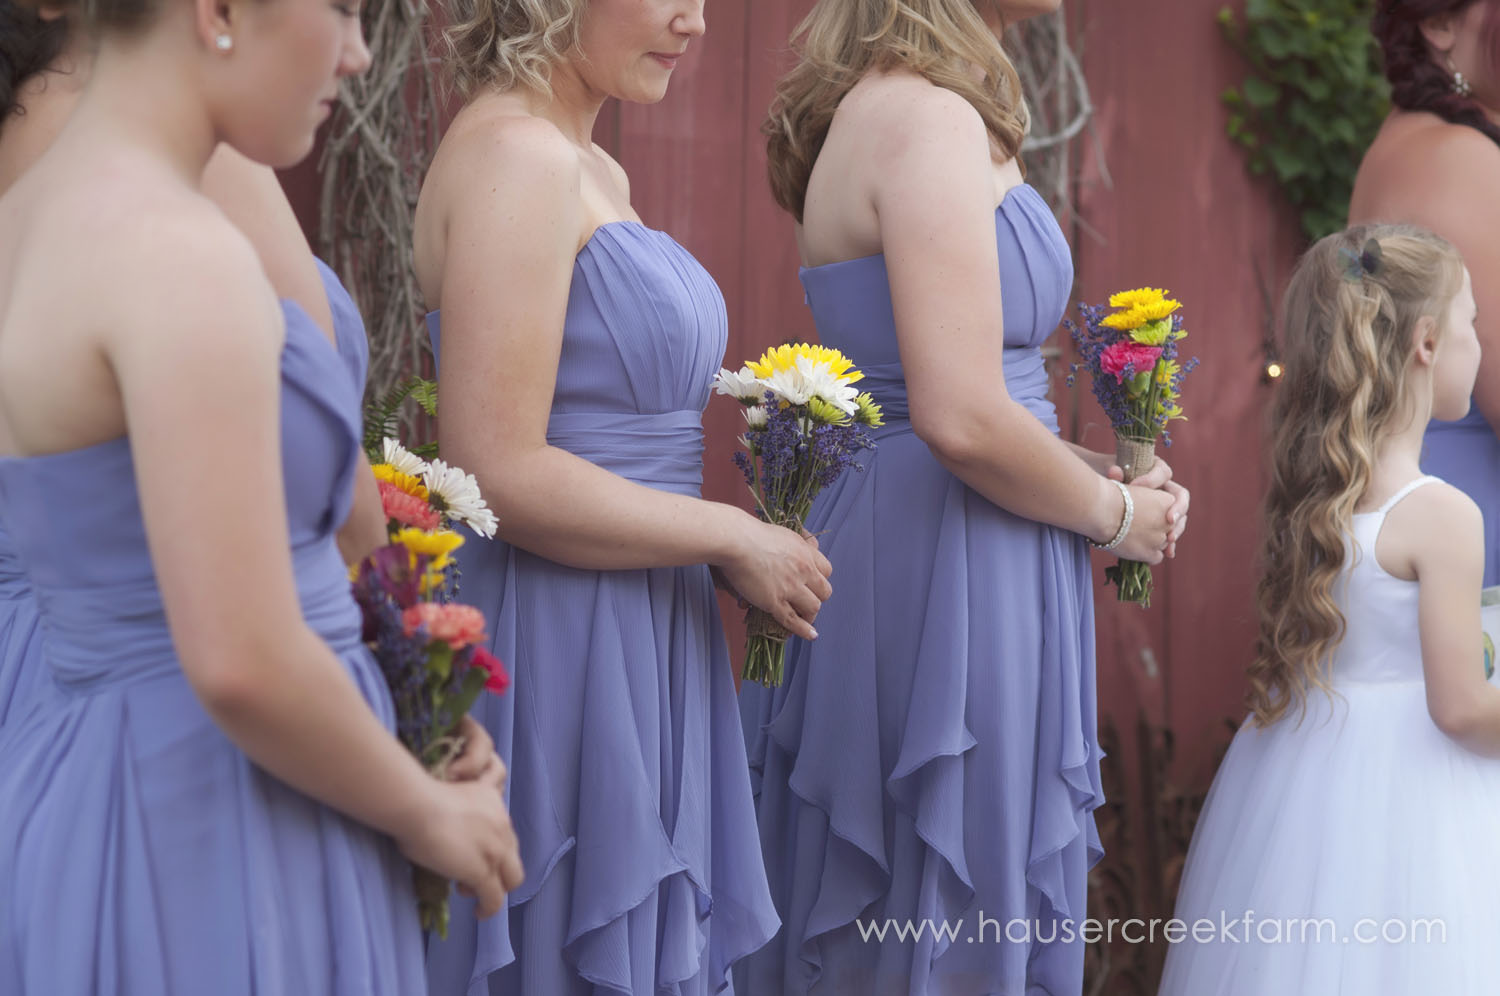 bridesmaids-at-farm-wedding-a-photo-by-ashley-0541.jpg